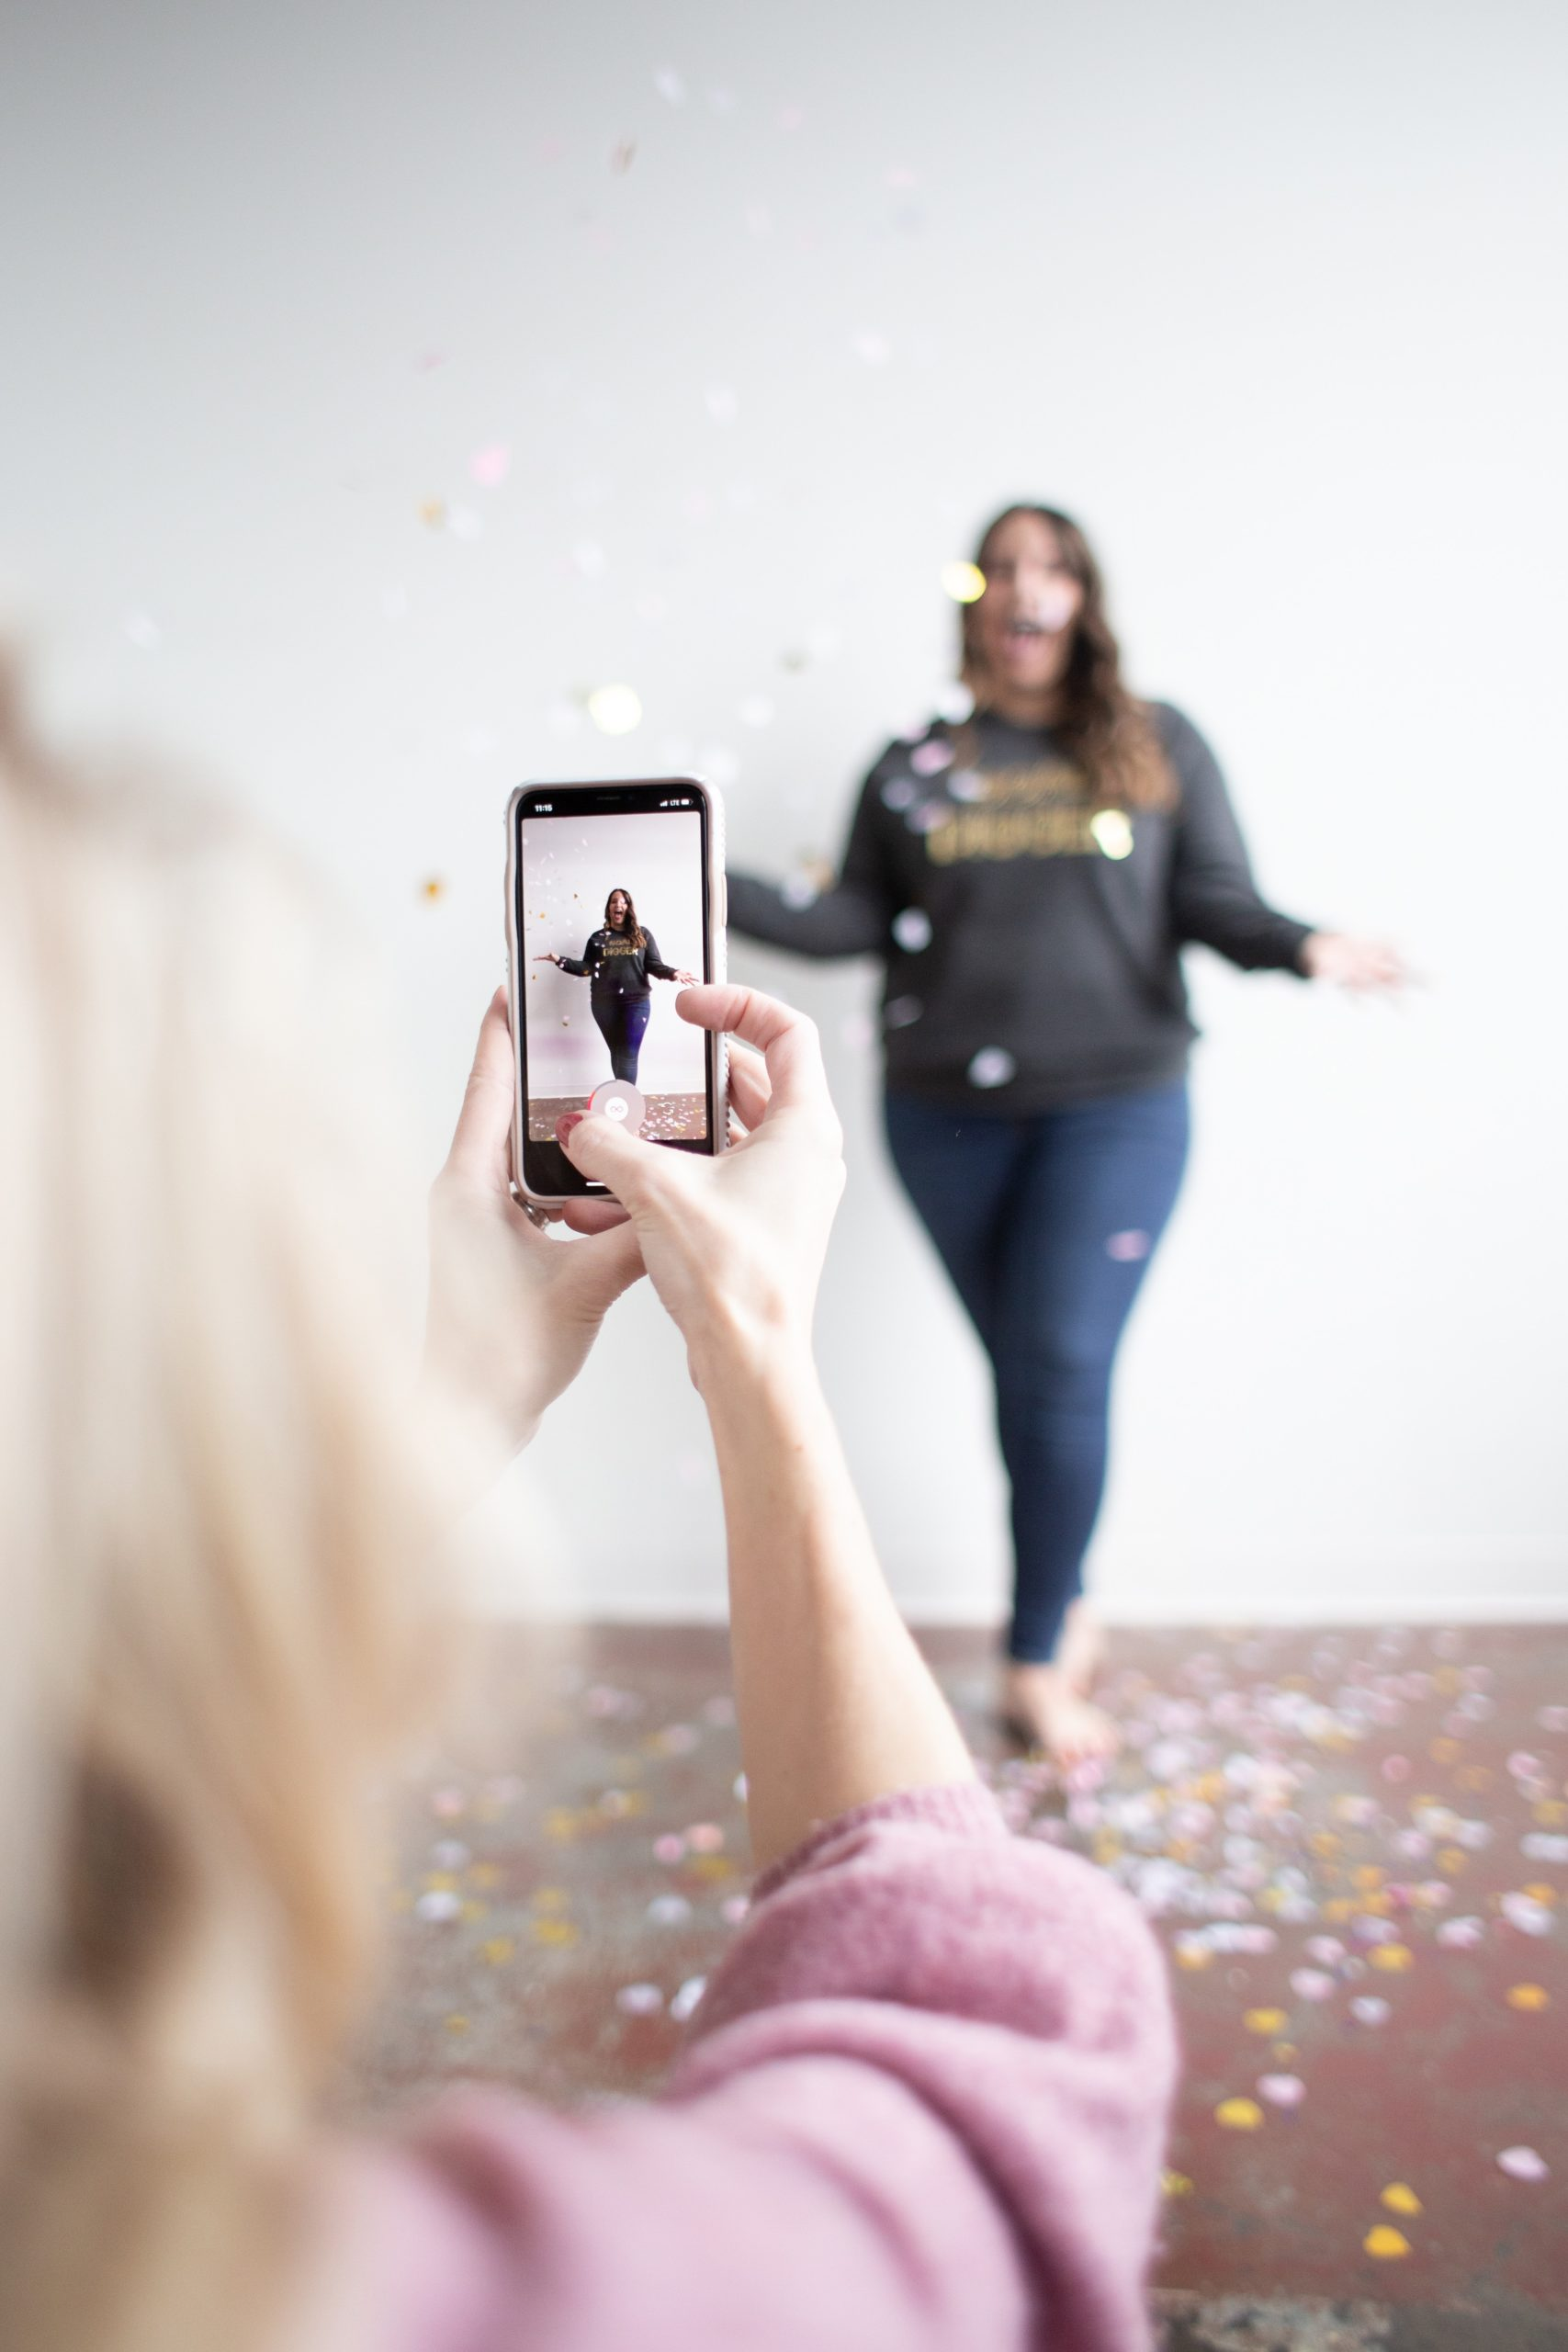 How To Make Your Facebook Stories Stand Out, woman taking photo